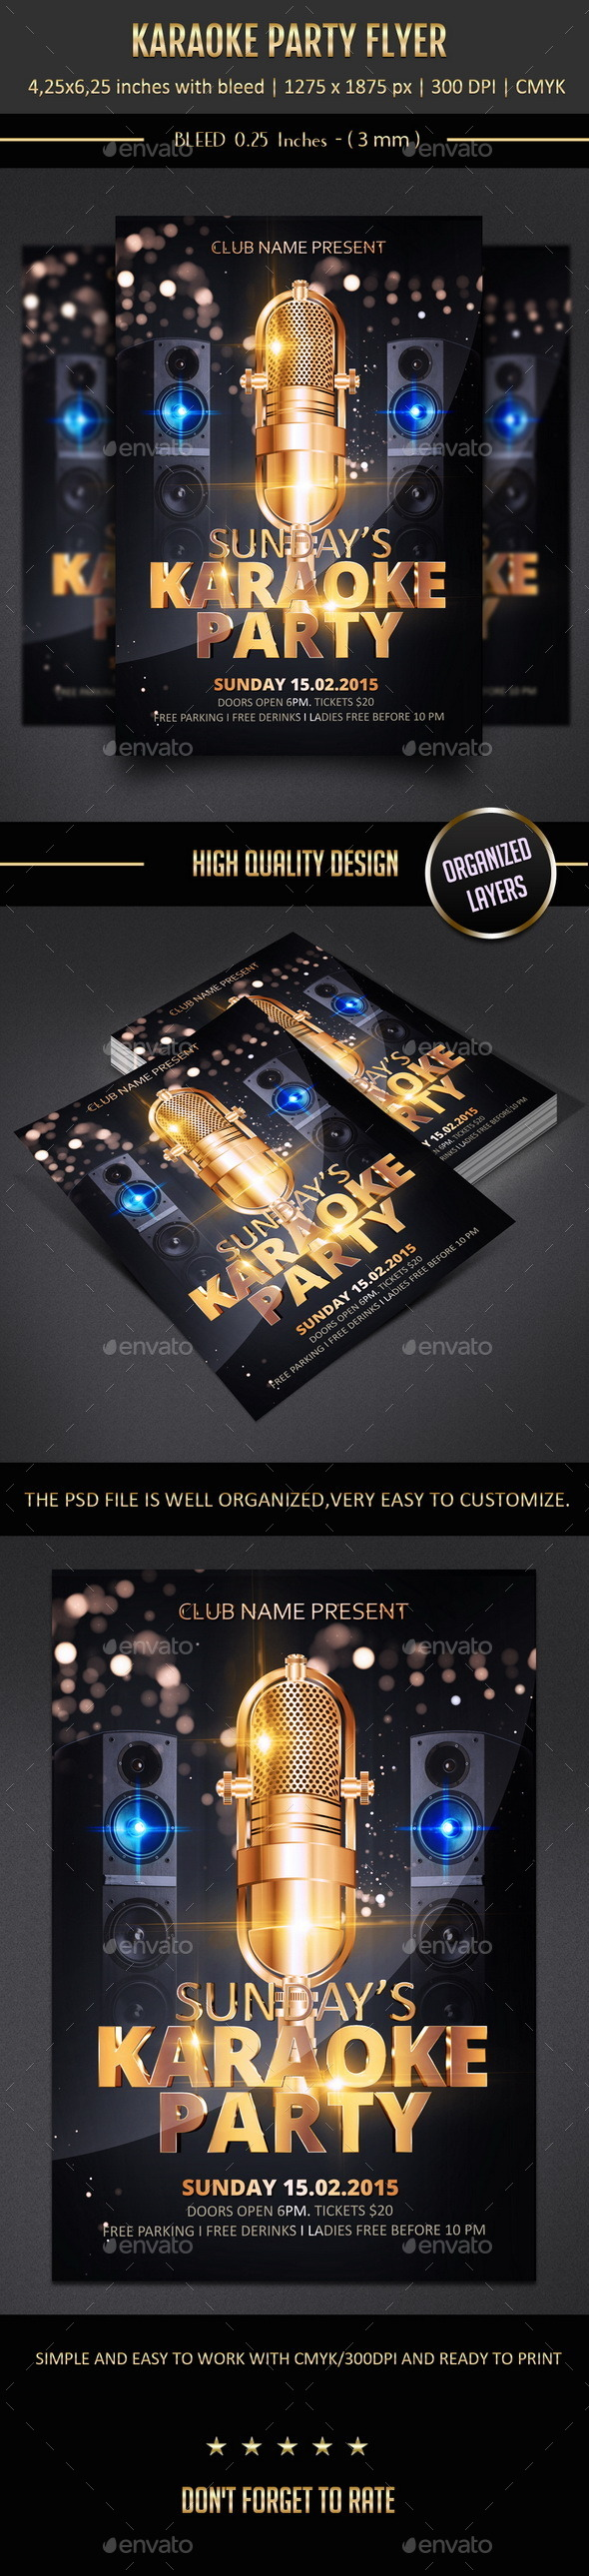 GraphicRiver Karaoke Party Flyer 10360917